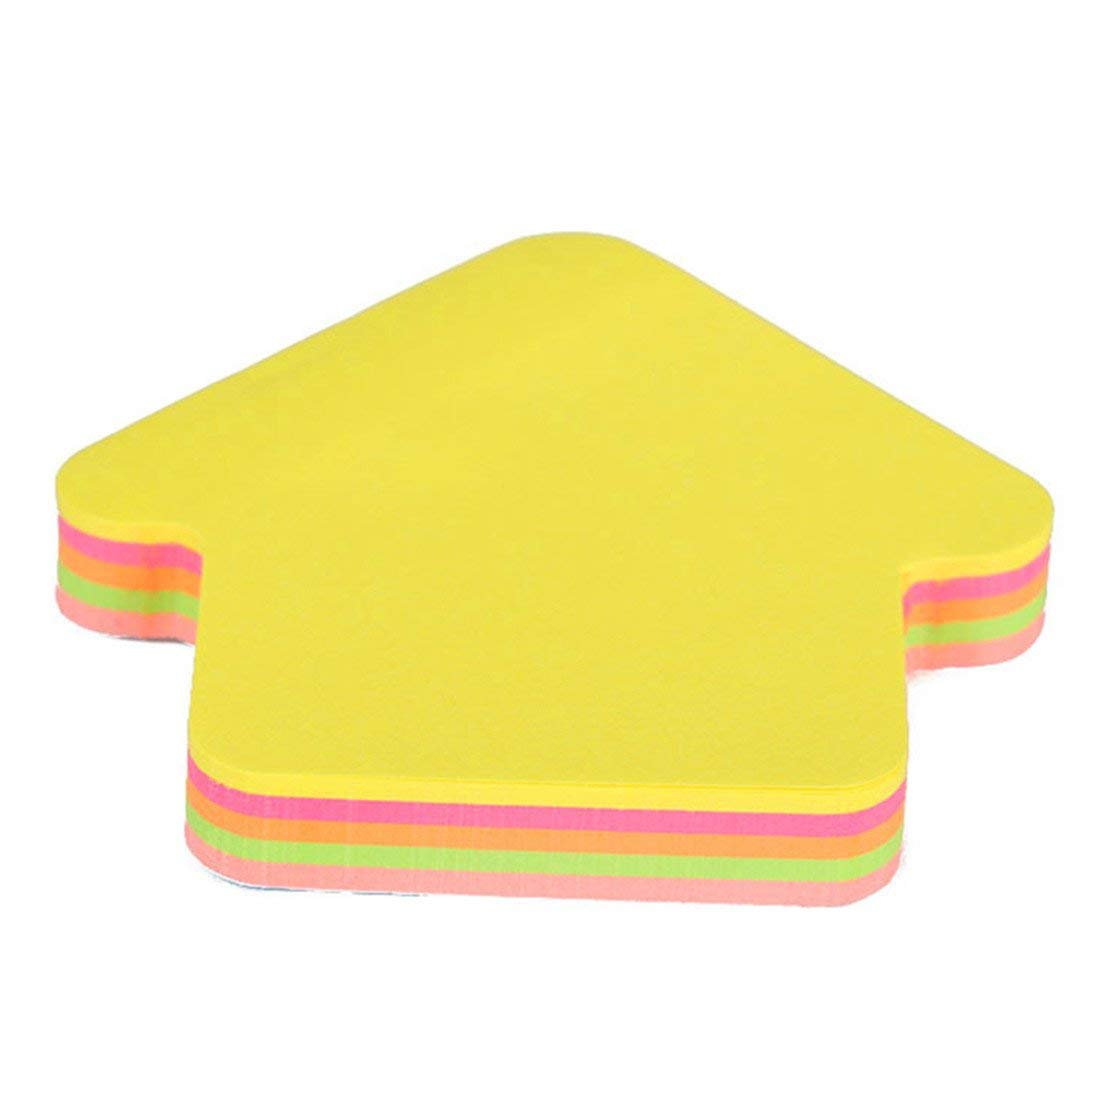 Super Sticky Notes,3x3 Inches,Practical Special Shape Sticky Notes Pads for Student School Office Arrow Shape Durable and Practical